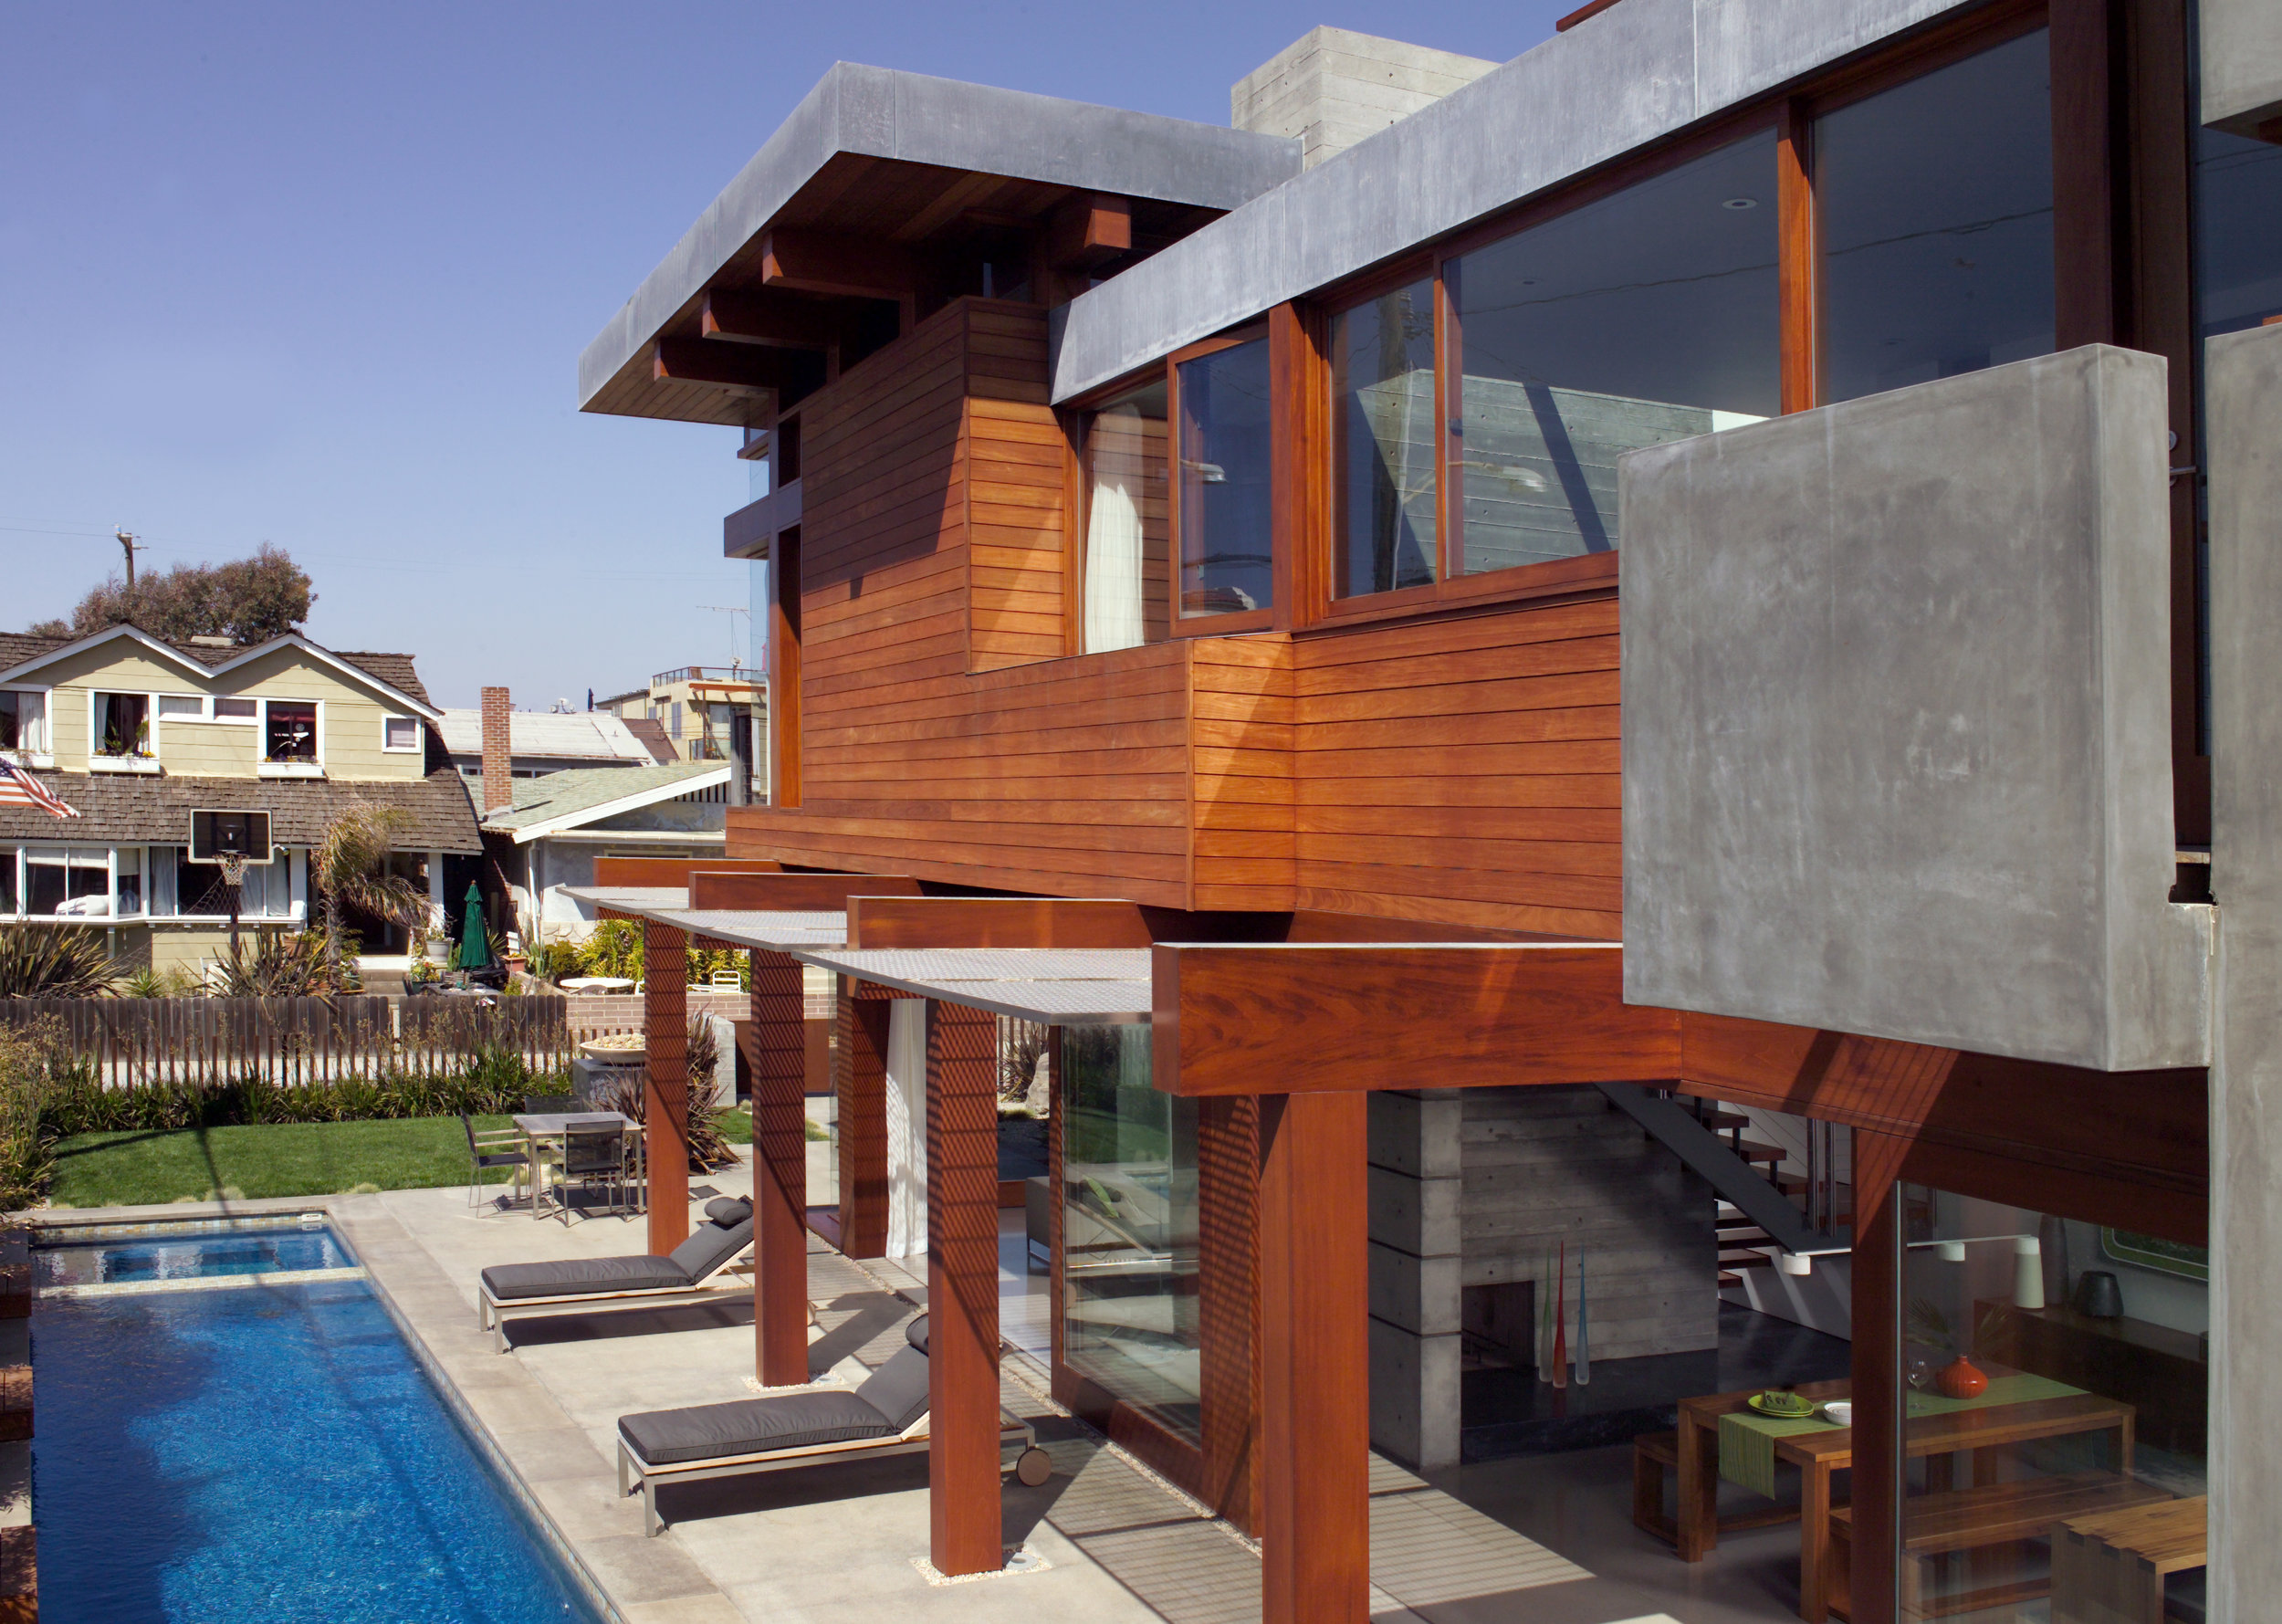 S.E.A.-Studio-Environmental-Architecture-David-Hertz-FAIA-Strand-House-Hermosa-Beach-sustainable-regenerative-restorative-design-residential-contemporary-modern-passive-systems-recycled-wood-concrete-green-building-South-Bay-ocean-view-studioea-2.jpg